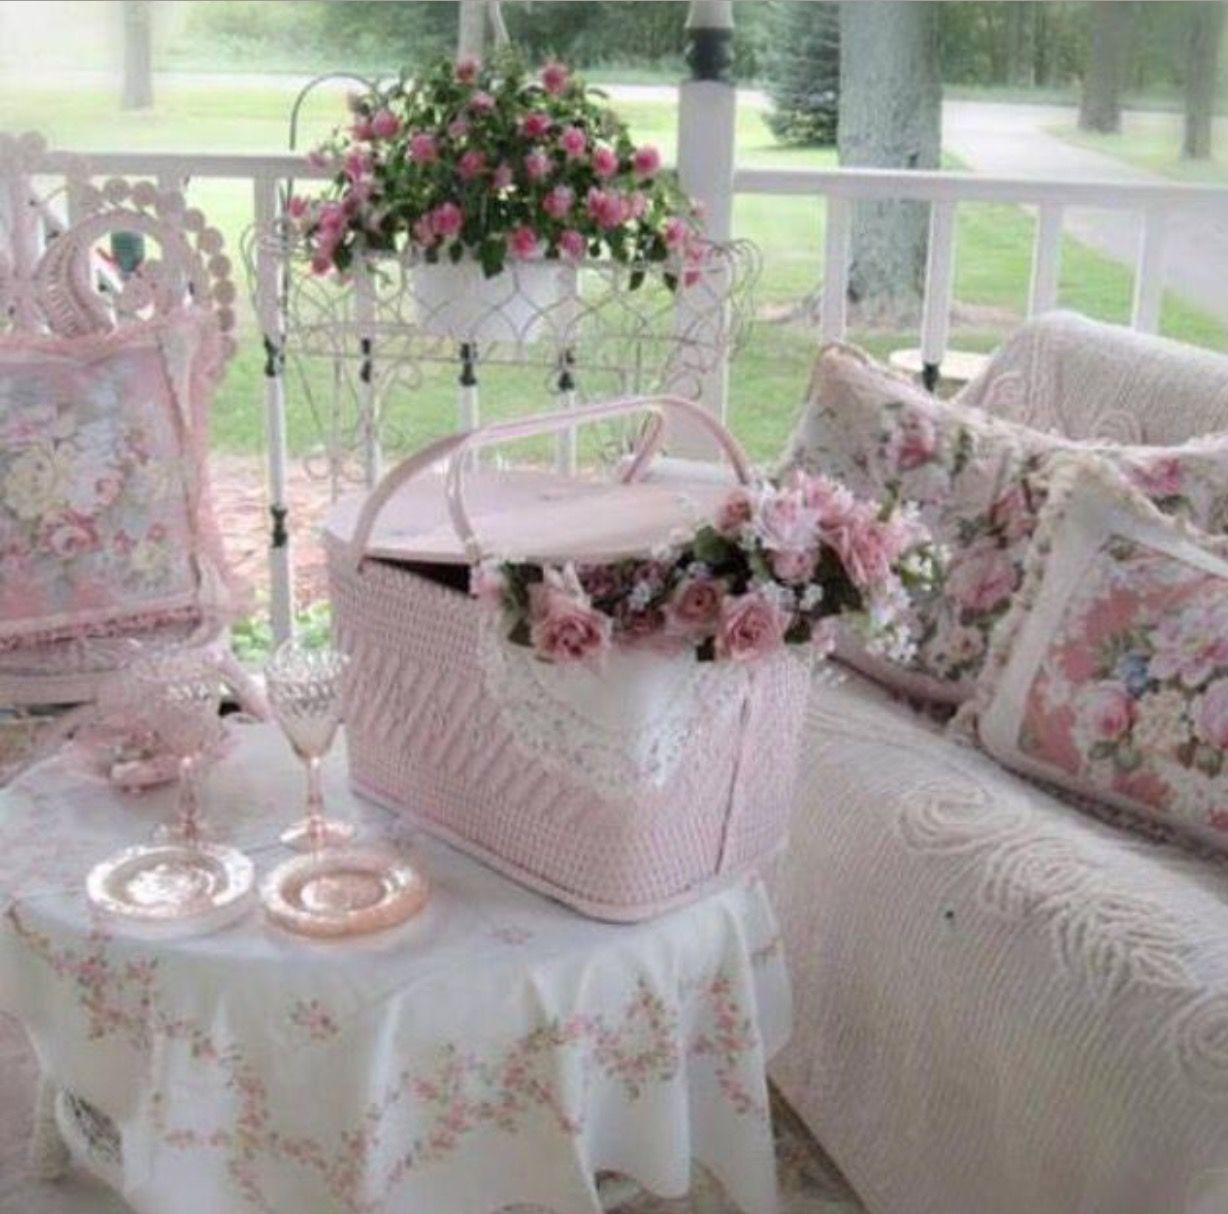 shabby chic porch shabby pastels pinterest shabby chic shabby chic deko und balkon. Black Bedroom Furniture Sets. Home Design Ideas